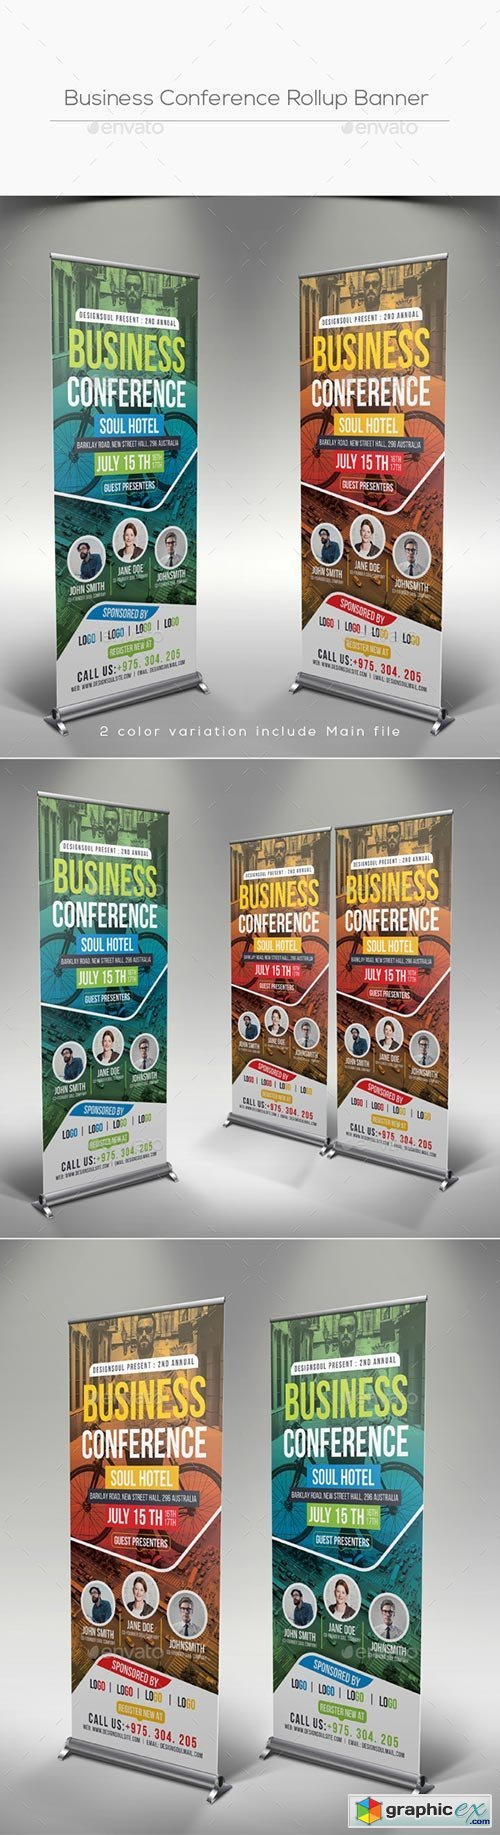 Business Conference Rollup Banner